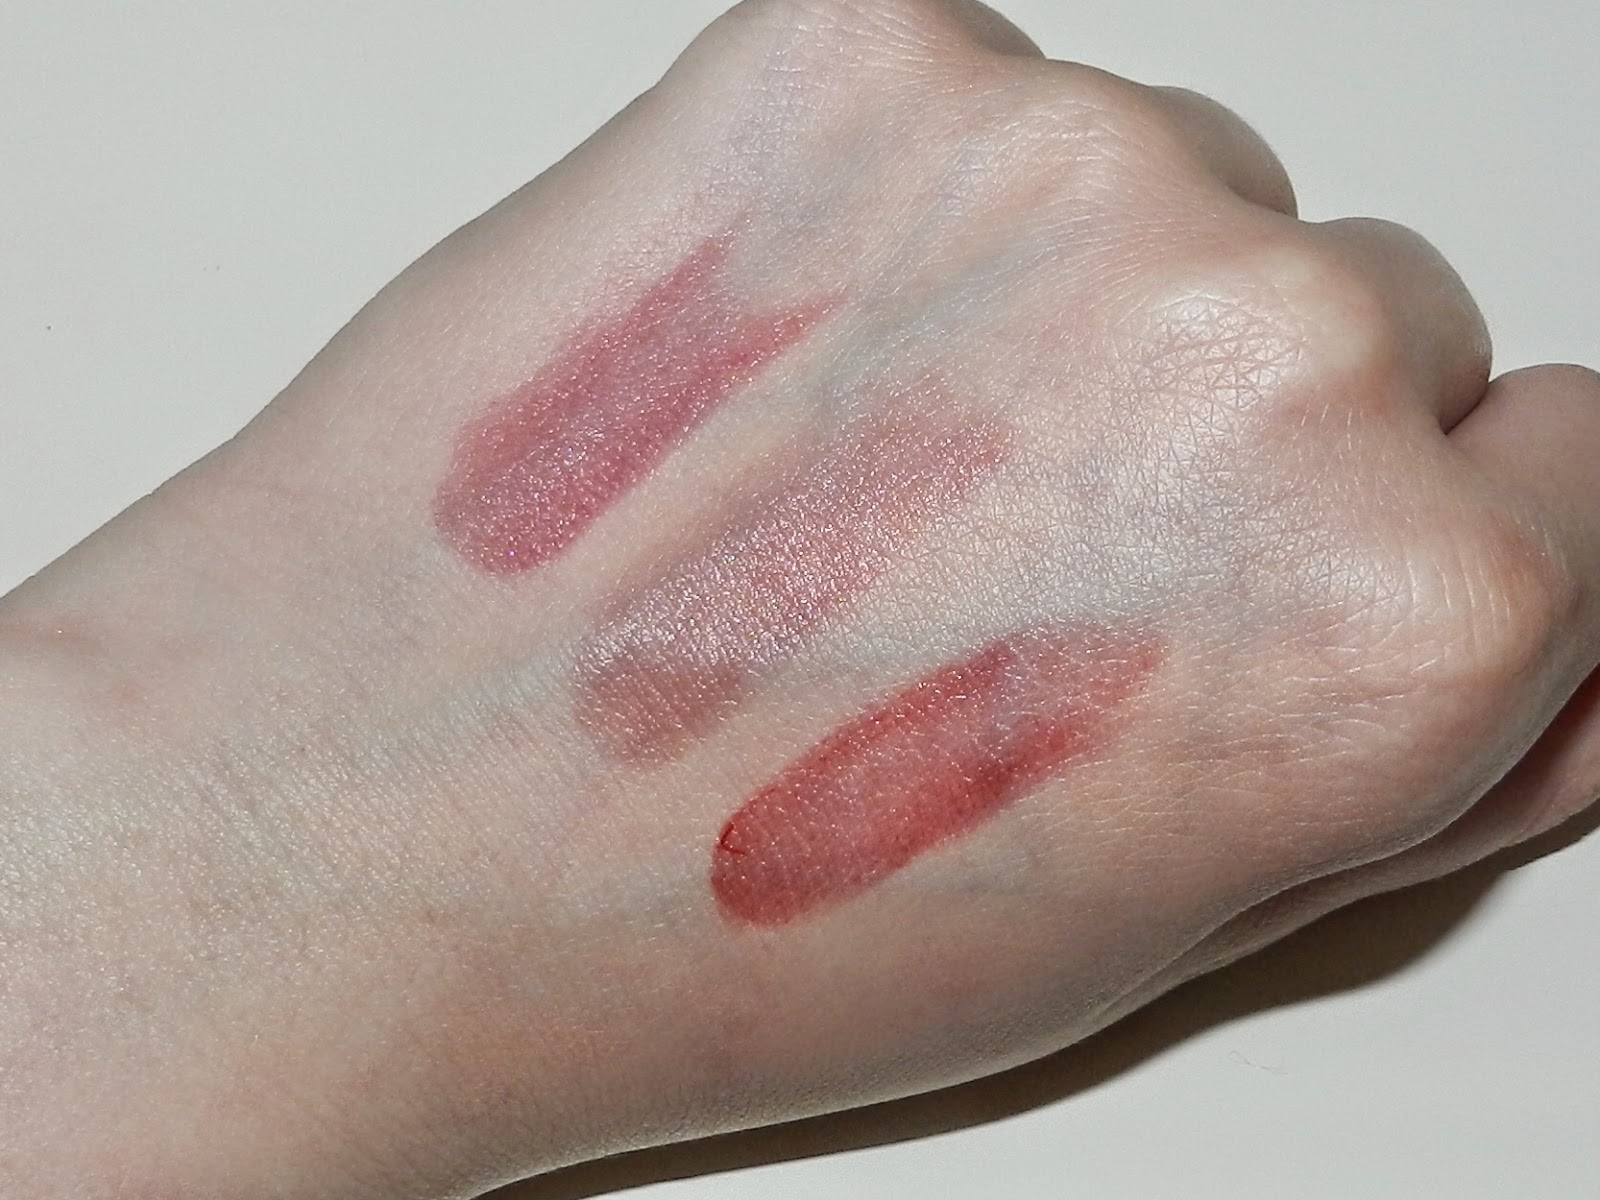 Life Is Worth The Fight Lipstick Spree Revlon Ultra Hd No840 Pointsettia Next Up We Have Colorstay Which Im Really Surprised About Actually They Arent What I Expected At All First Off Packaging Lovely